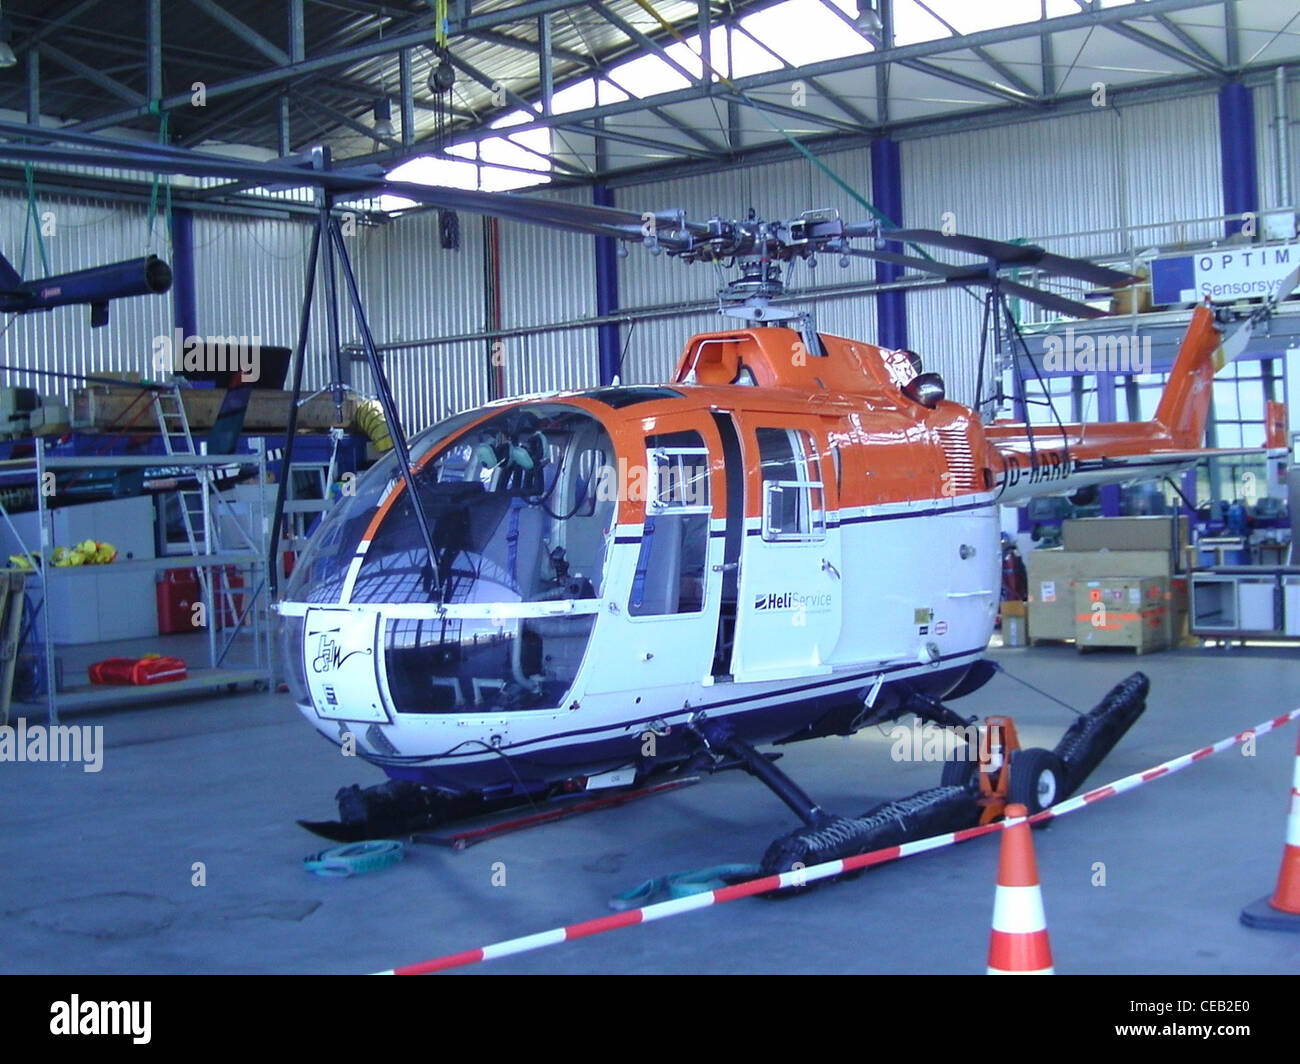 MBB Bo 105 helicopter with registration D-HARO in a hangar at the airfield of Bremerhaven - Stock Image